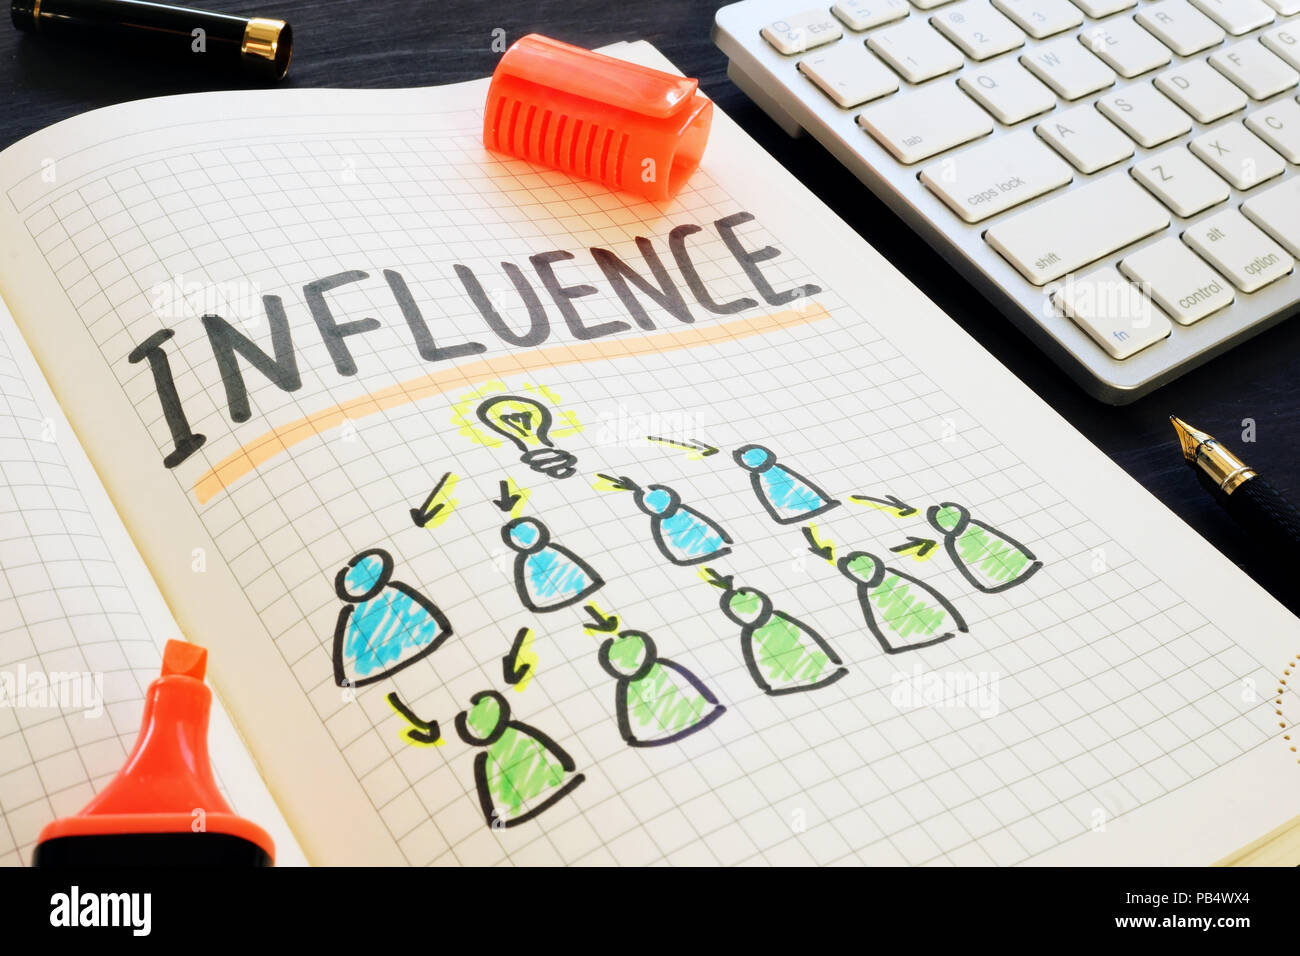 Influence written by hand in the note. - Stock Image